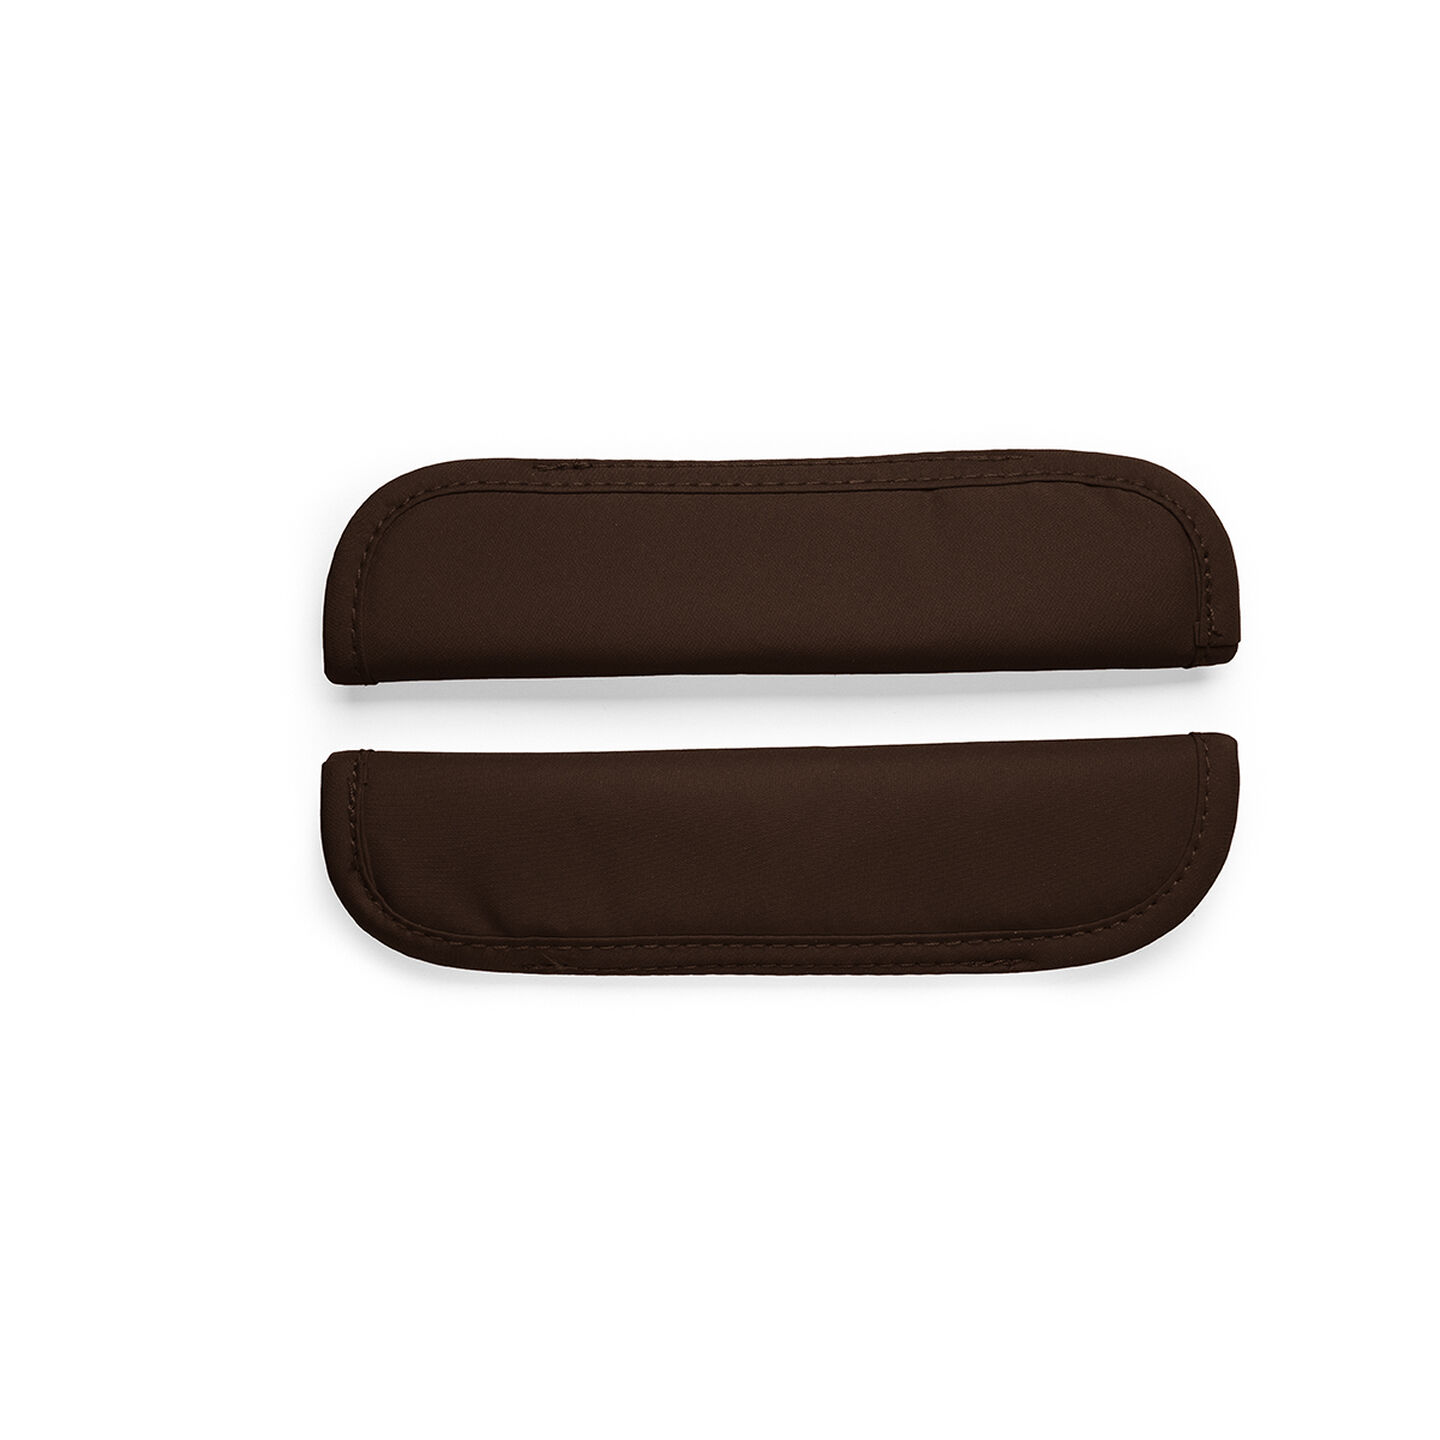 Stokke® Xplory® Sicherheitsgurt Protector Brown, Brown, mainview view 2